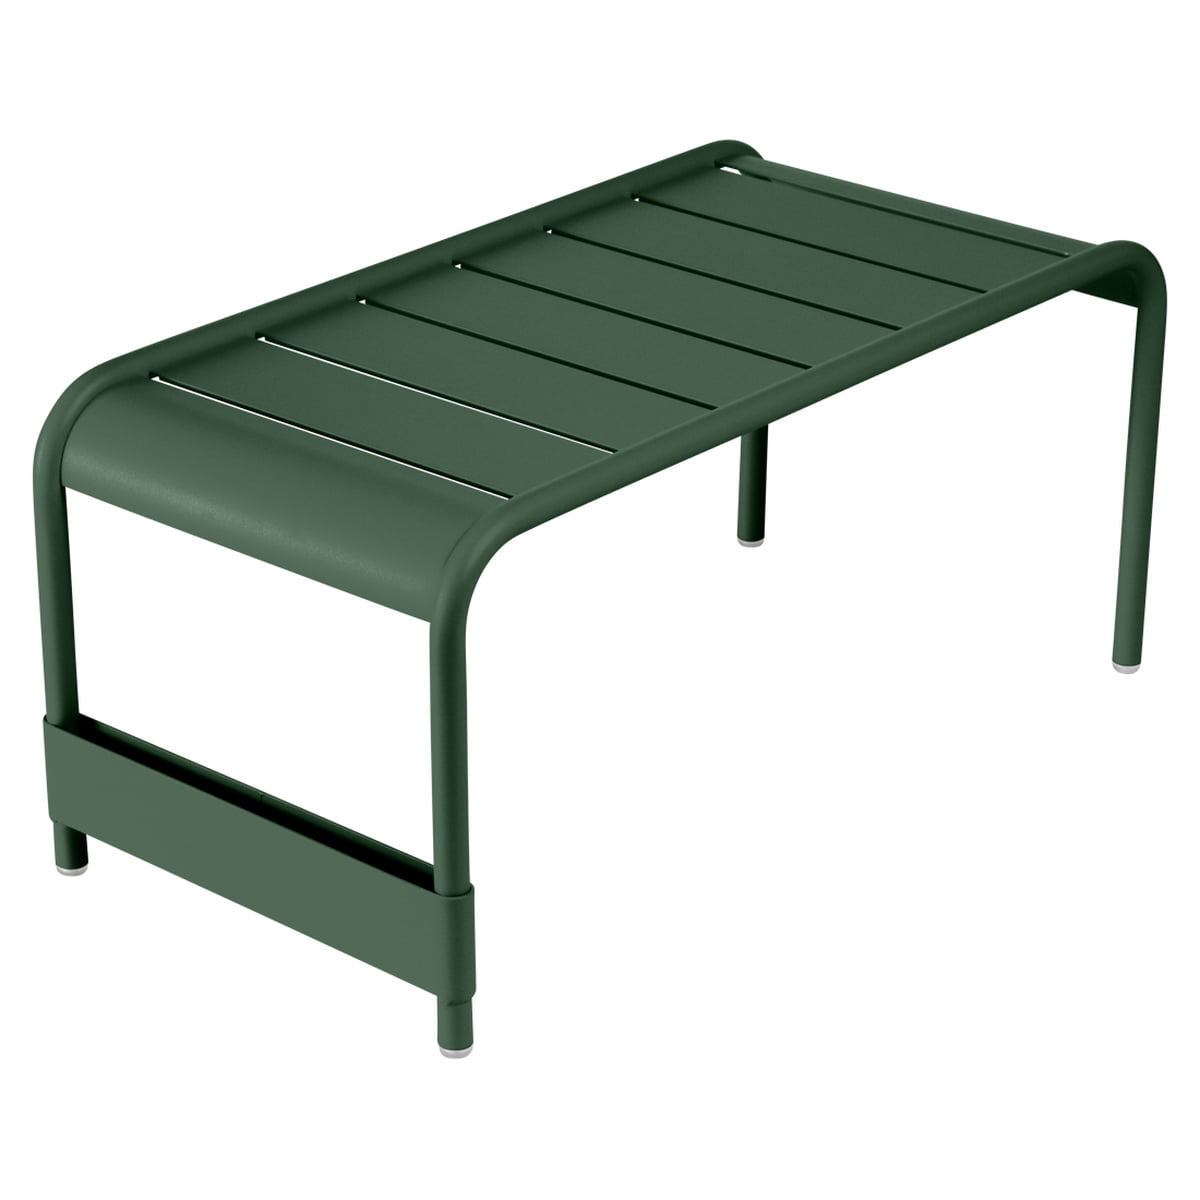 Luxembourg Low Table / Garden Bench by Fermob